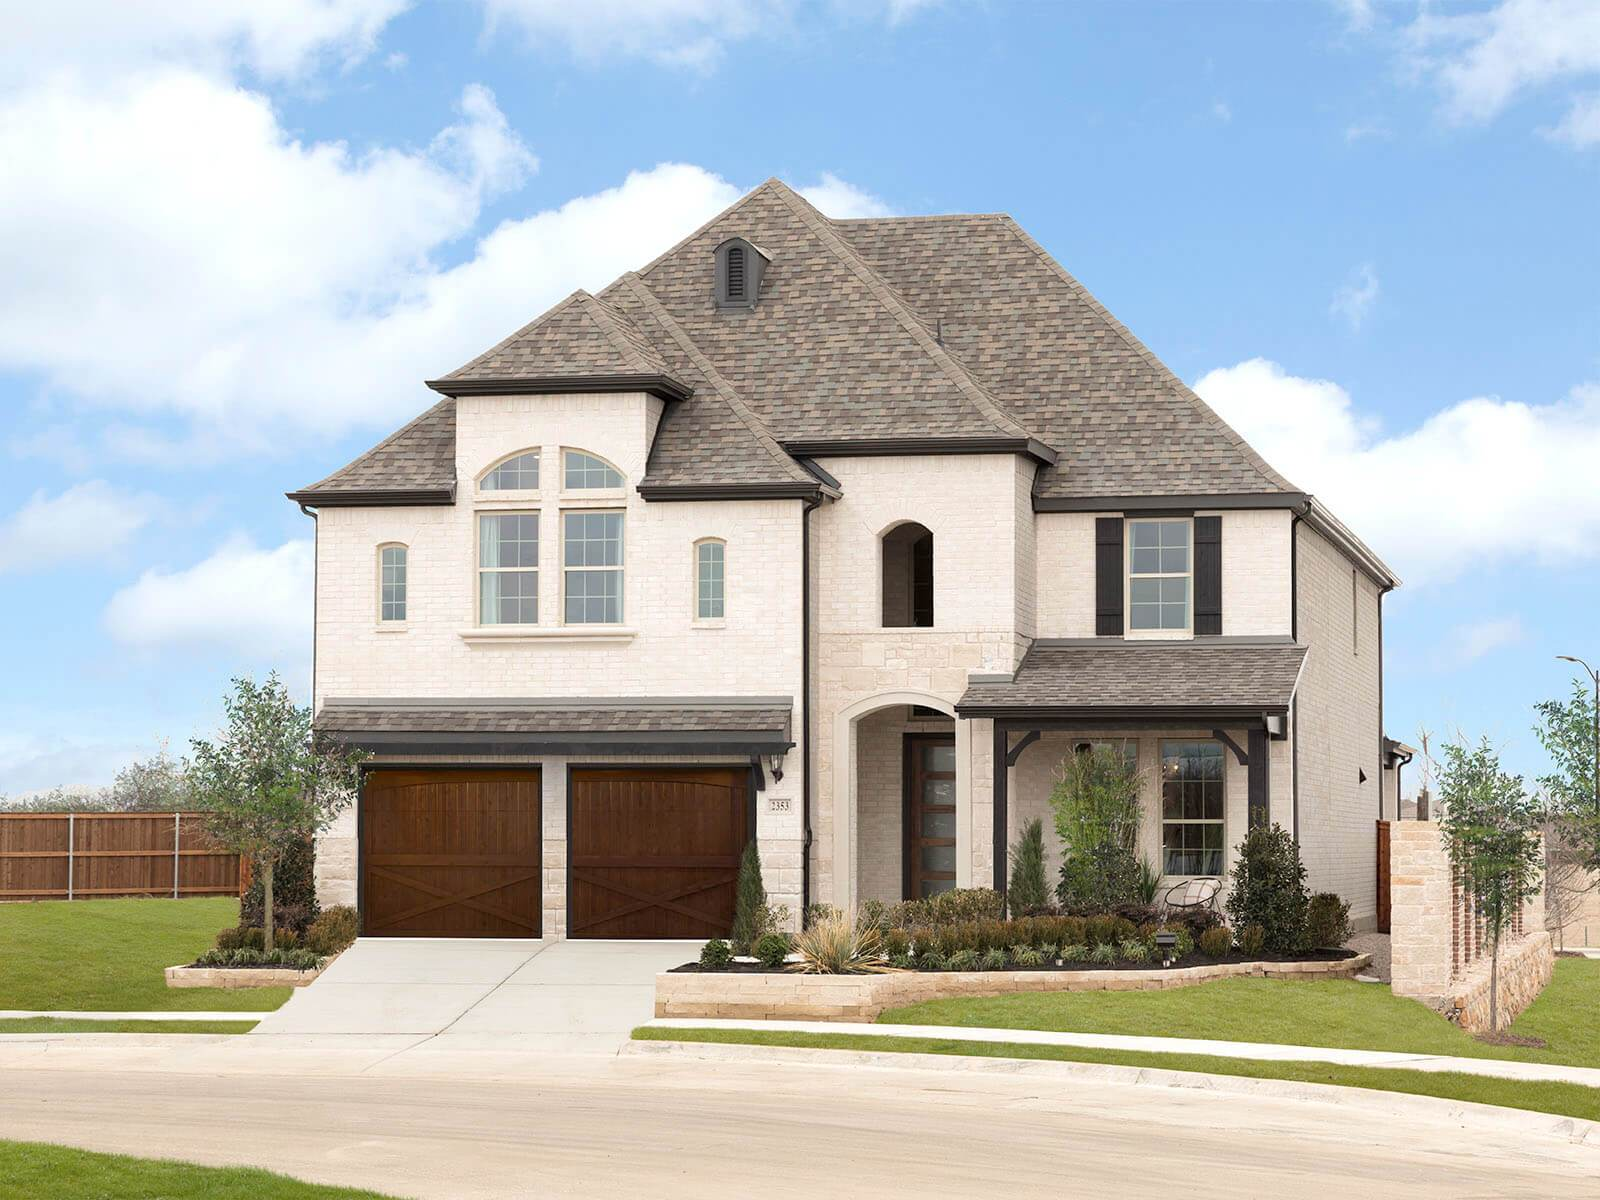 Welcome to the Cedar featured at The Enclave at Oak Grove